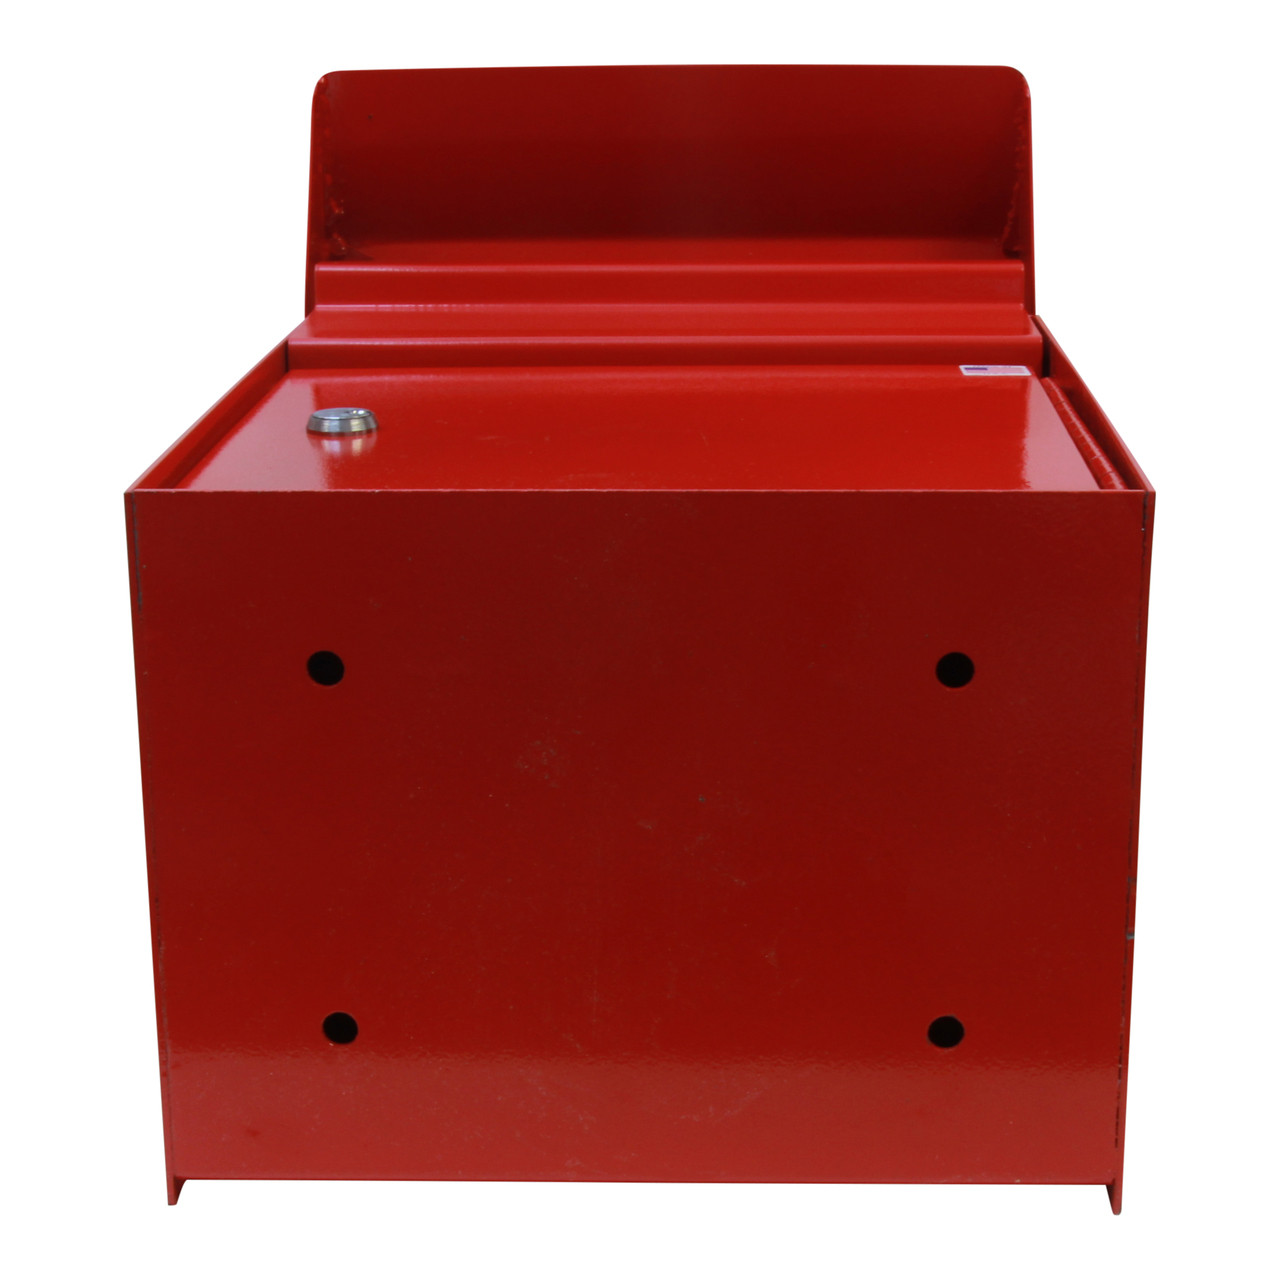 Shown with holes drilled for post mounting Outdoor Secure Payment Locking Drop Box